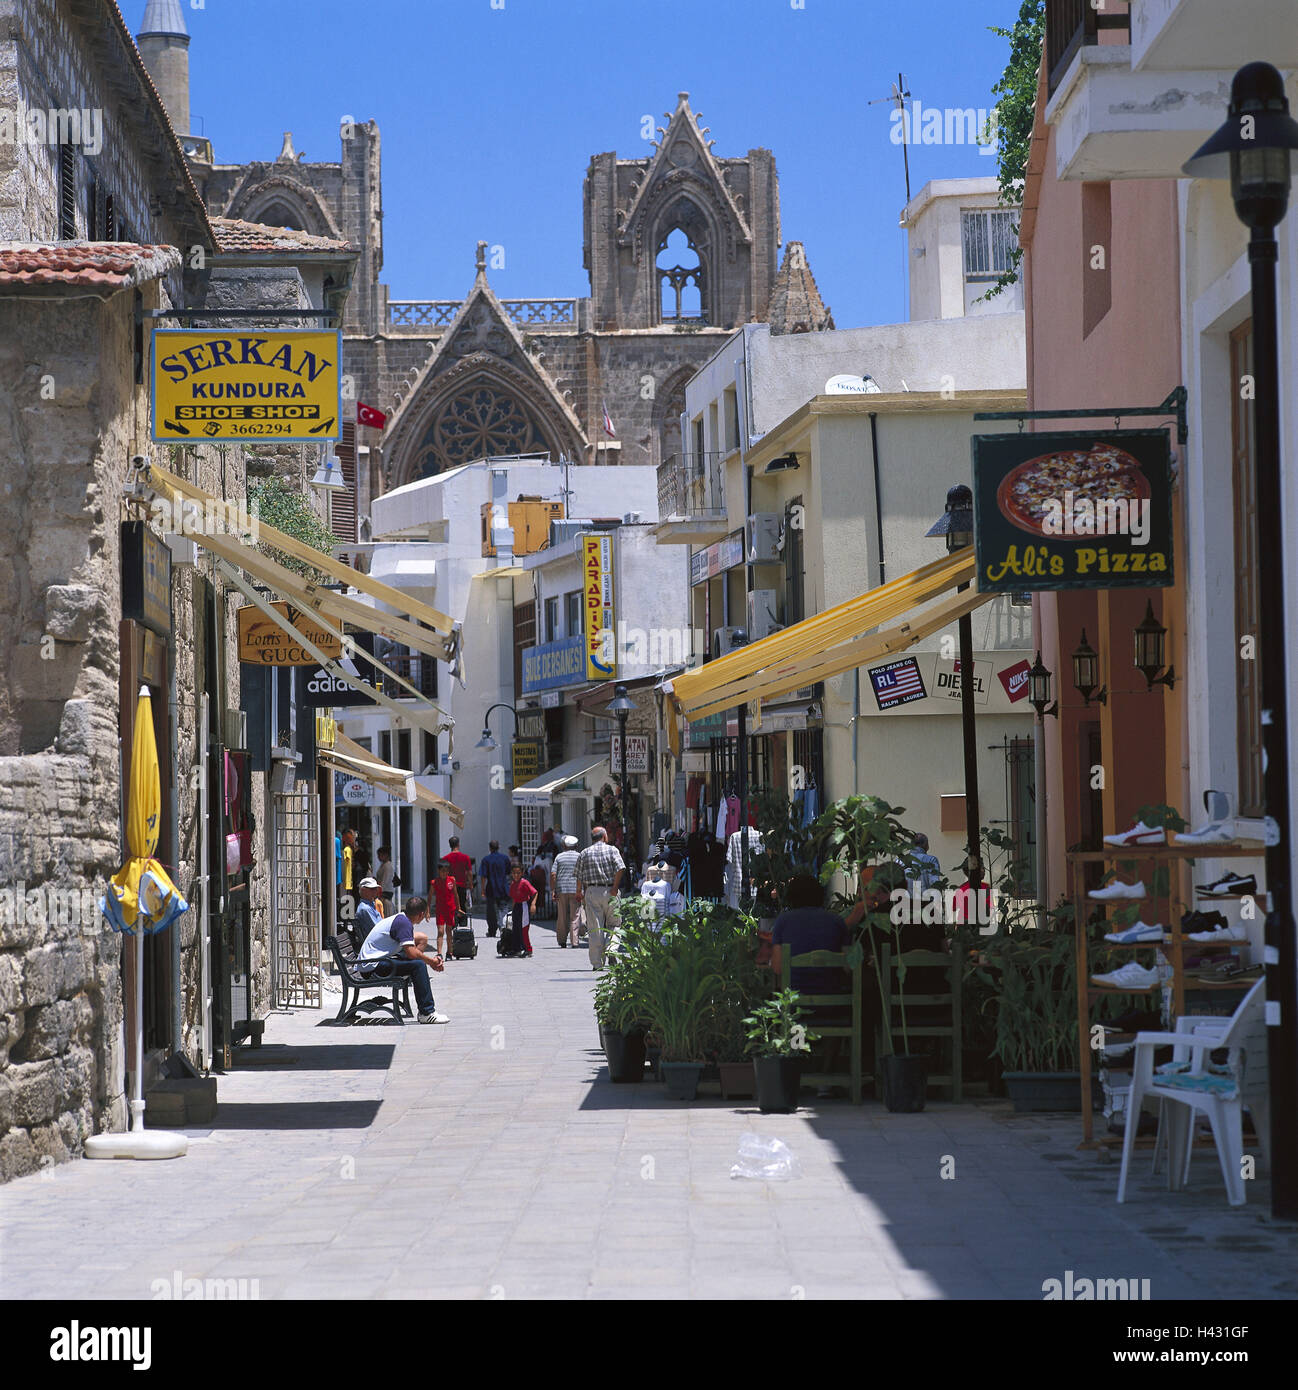 Cyprus, In Turkish, Famagusta, Old Town, Lane, Passer-by